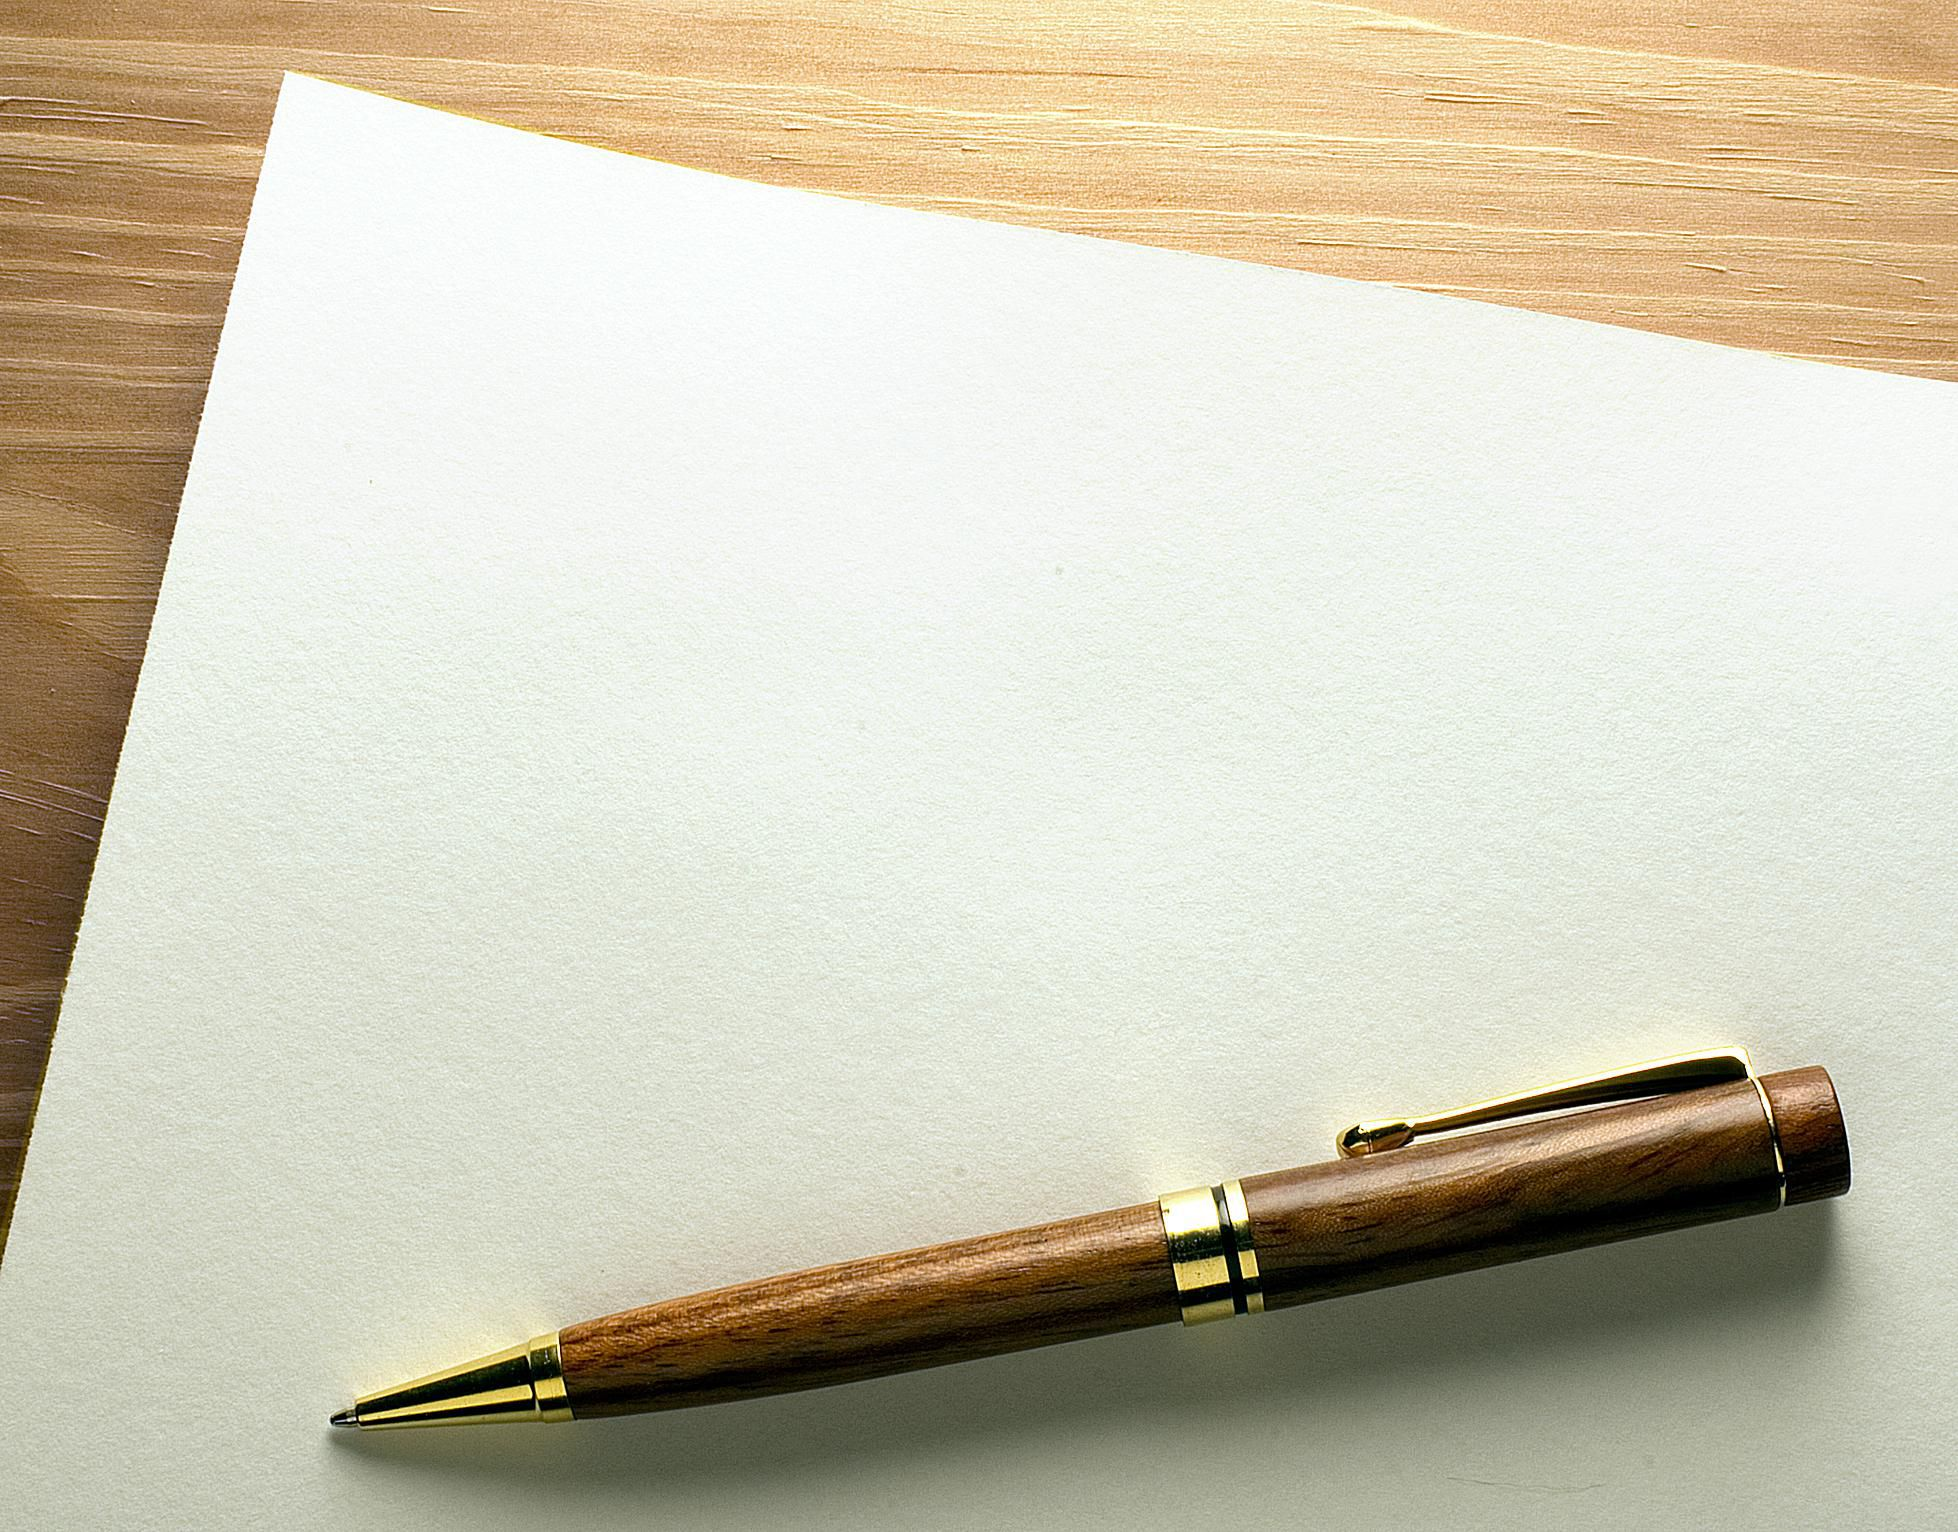 The Prewriting Stage of the Writing Process